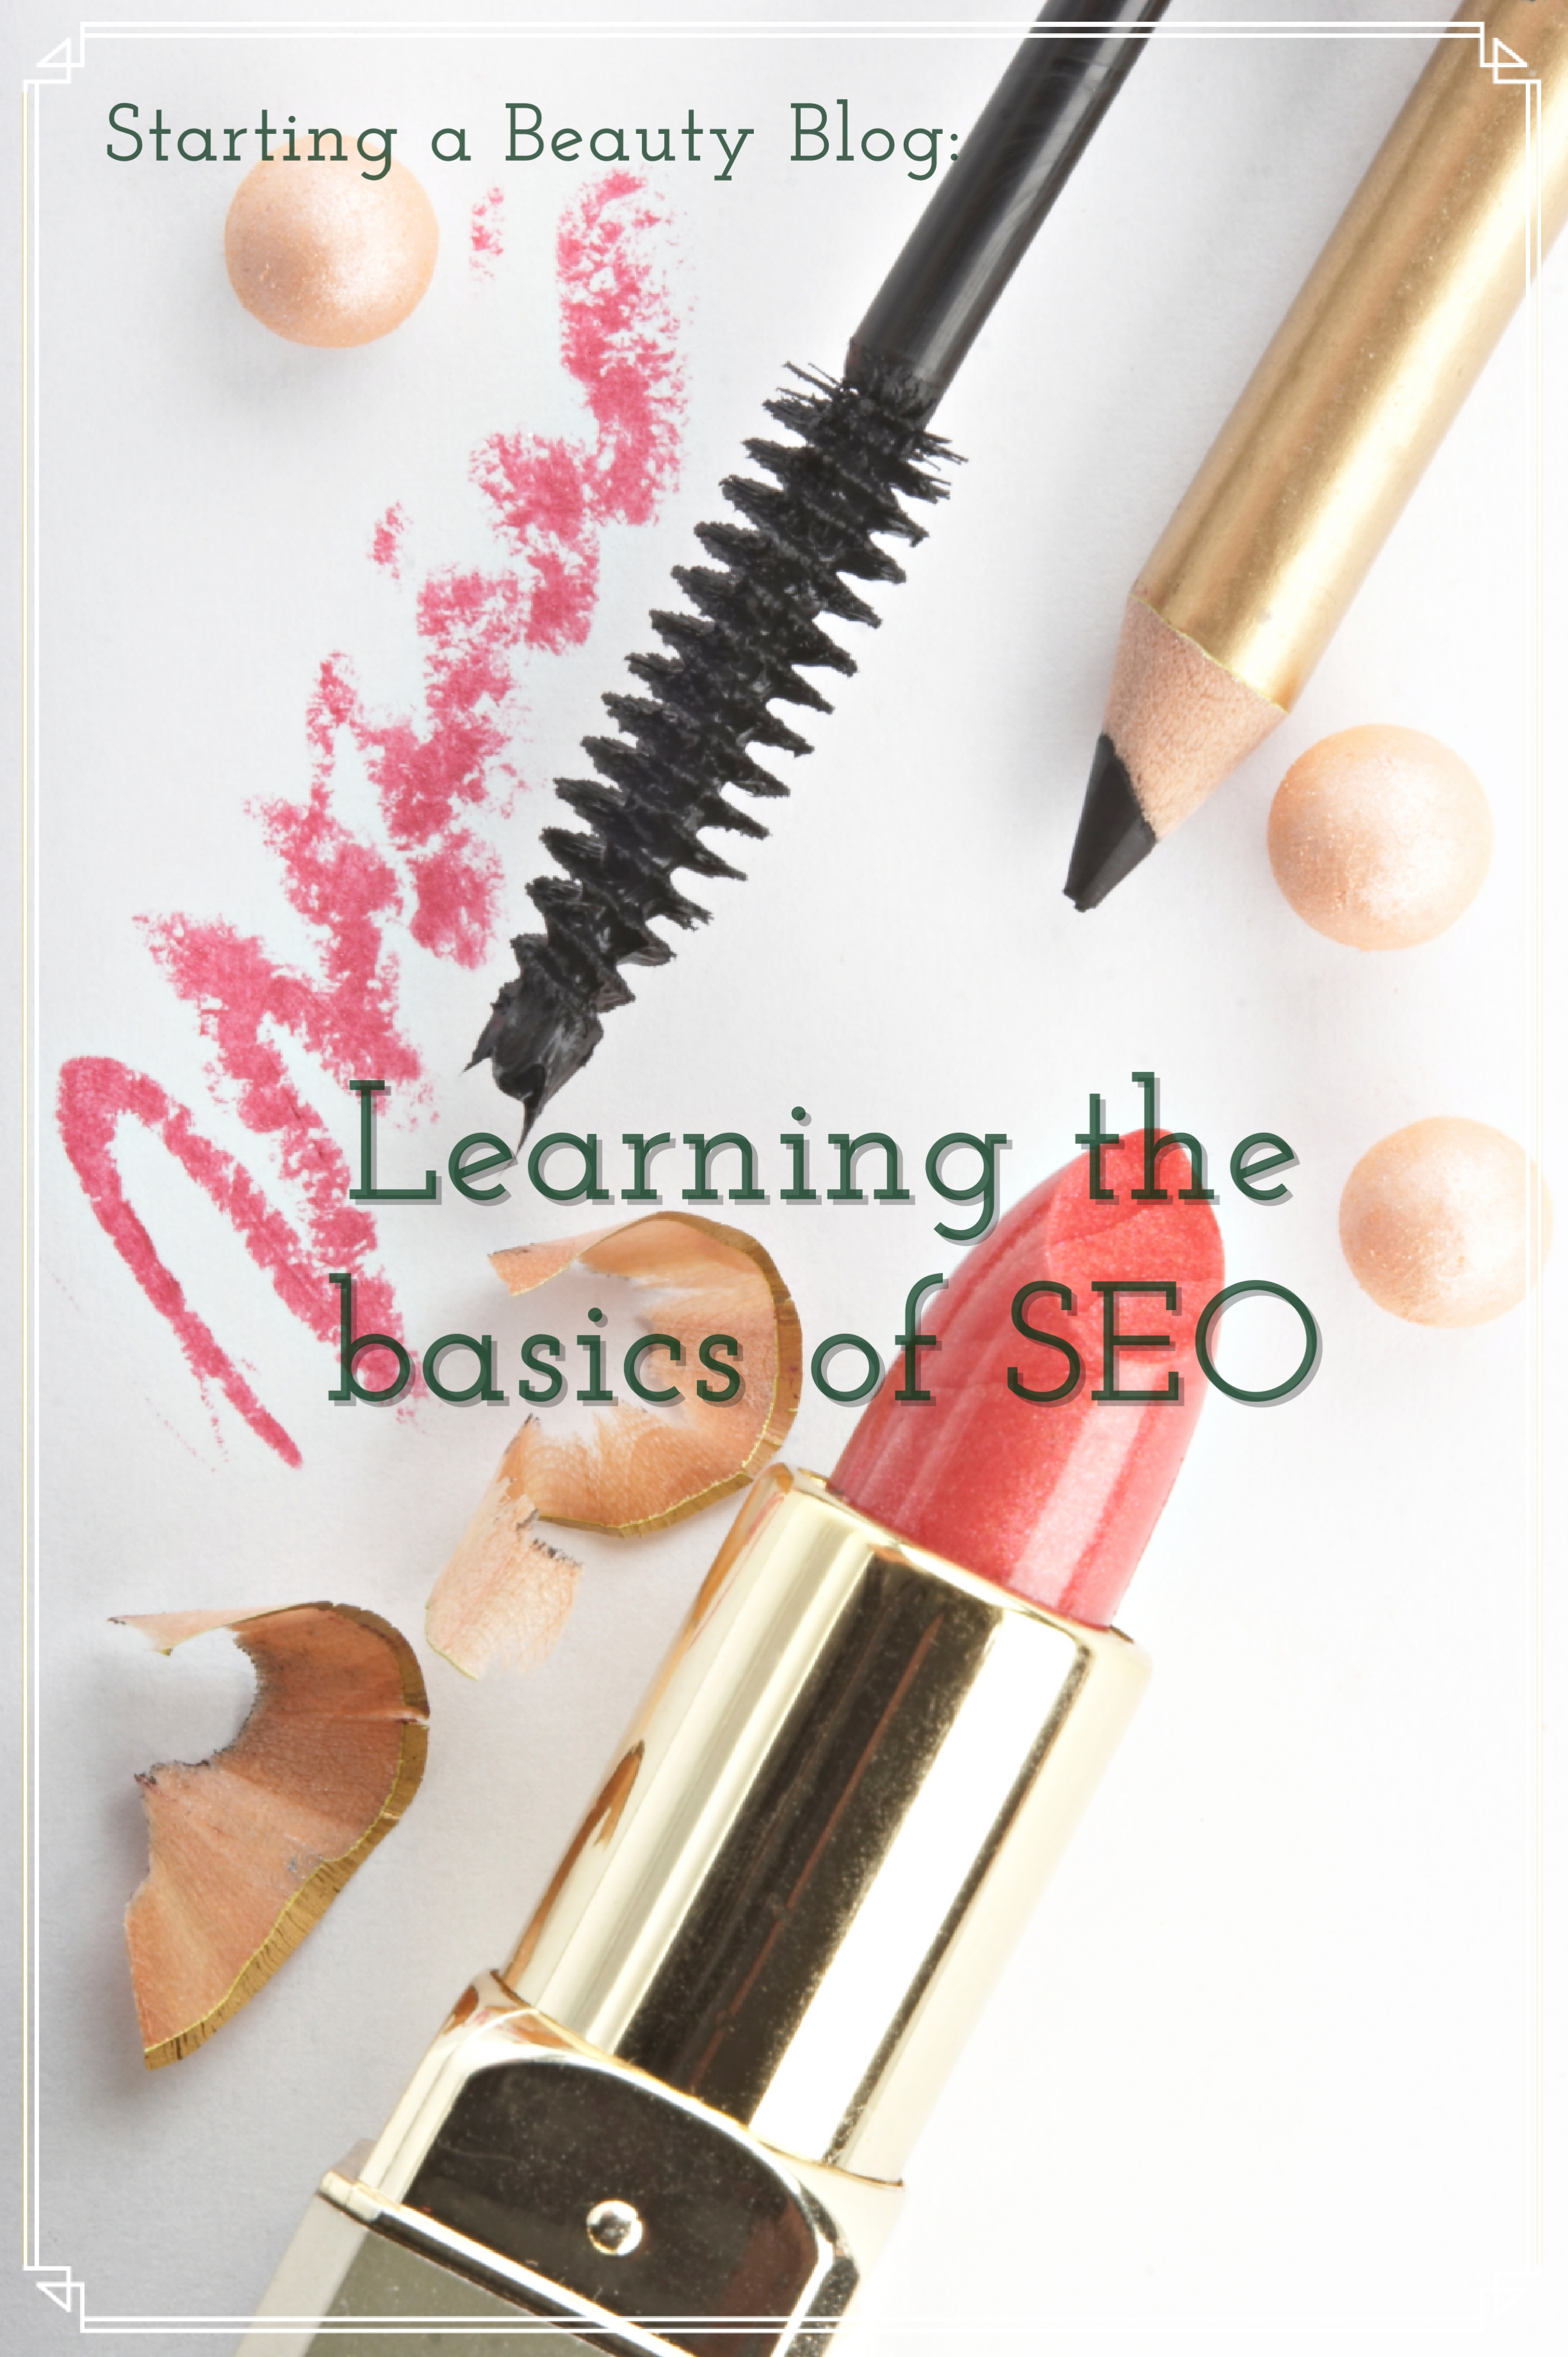 Starting a beauty blog with SEO